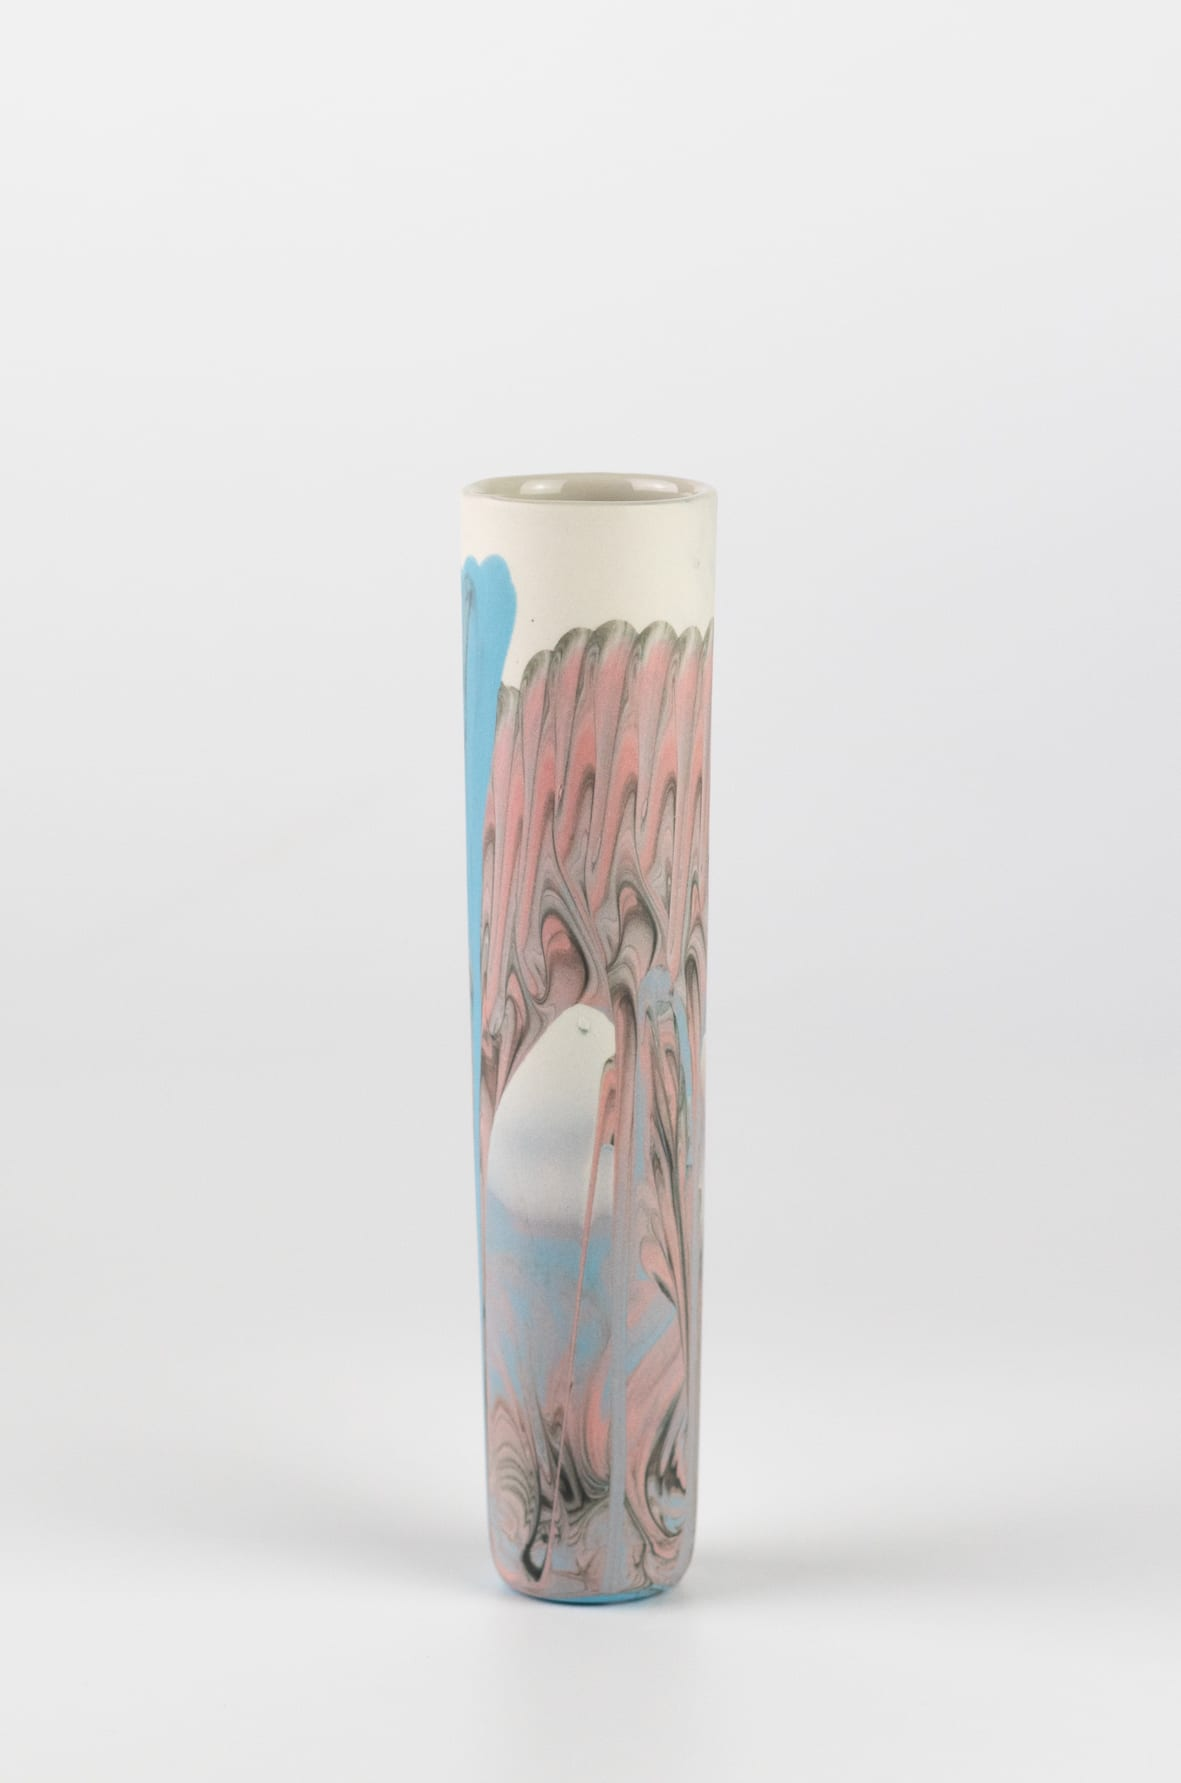 """<span class=""""link fancybox-details-link""""><a href=""""/artists/219-james-pegg/works/6577-james-pegg-boubouki-budvase-2019/"""">View Detail Page</a></span><div class=""""artist""""><strong>James Pegg</strong></div> <div class=""""title""""><em>Boubouki Budvase</em>, 2019</div> <div class=""""medium"""">action-cast stained porcelain with glazed interior</div><div class=""""price"""">£42.00</div>"""